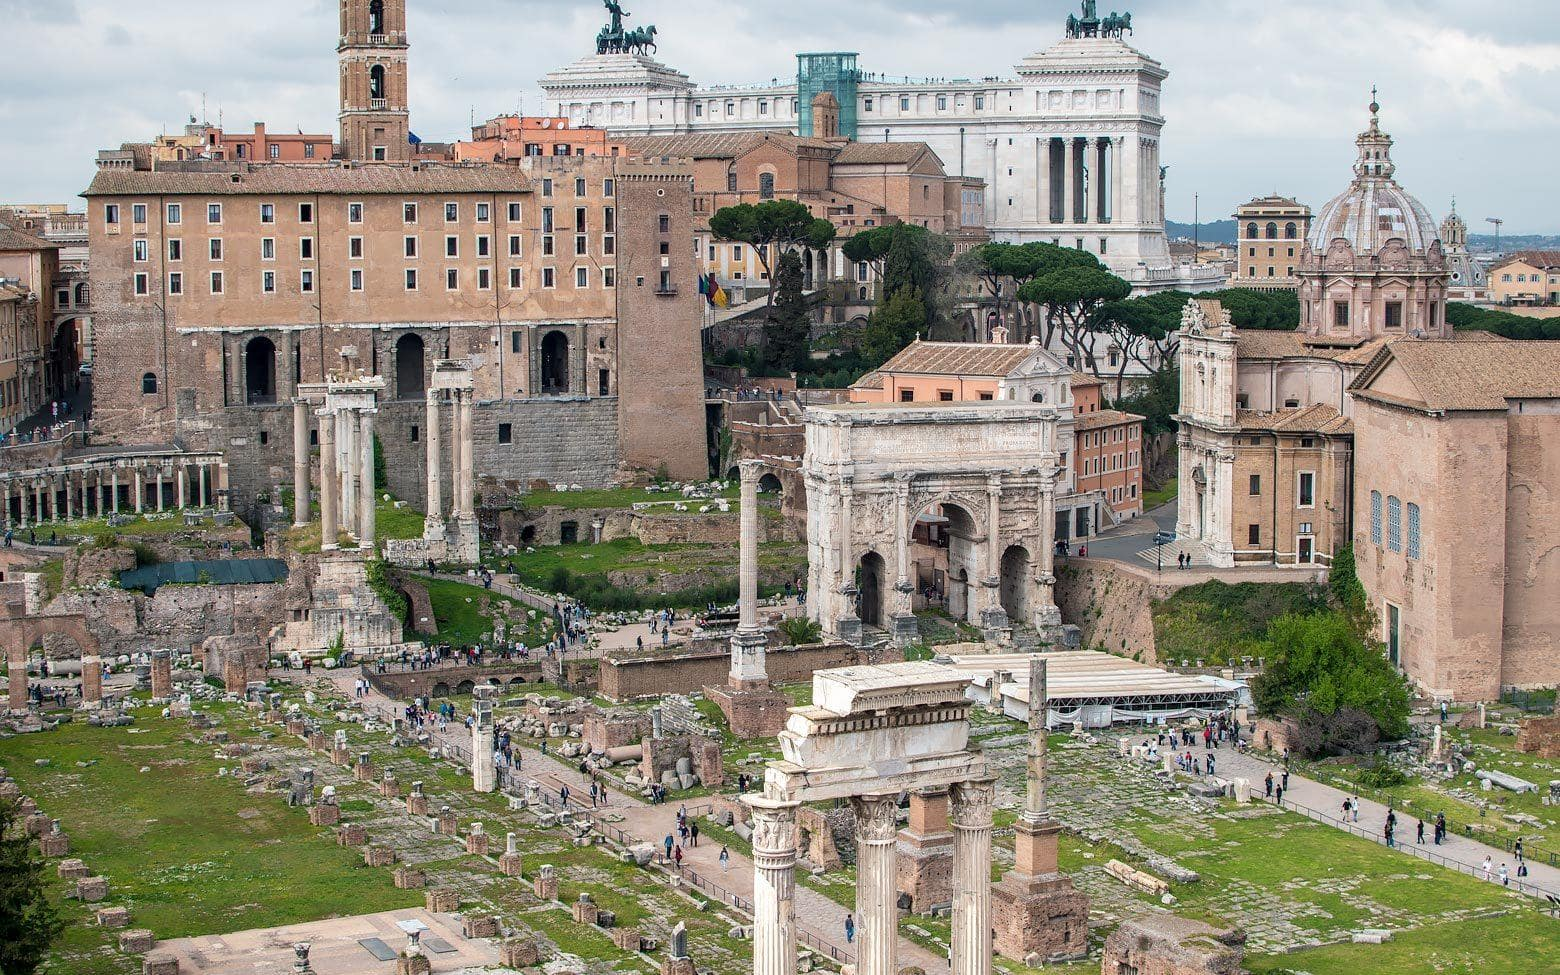 3 days in Rome itinerary day 2 - The Roman Forum